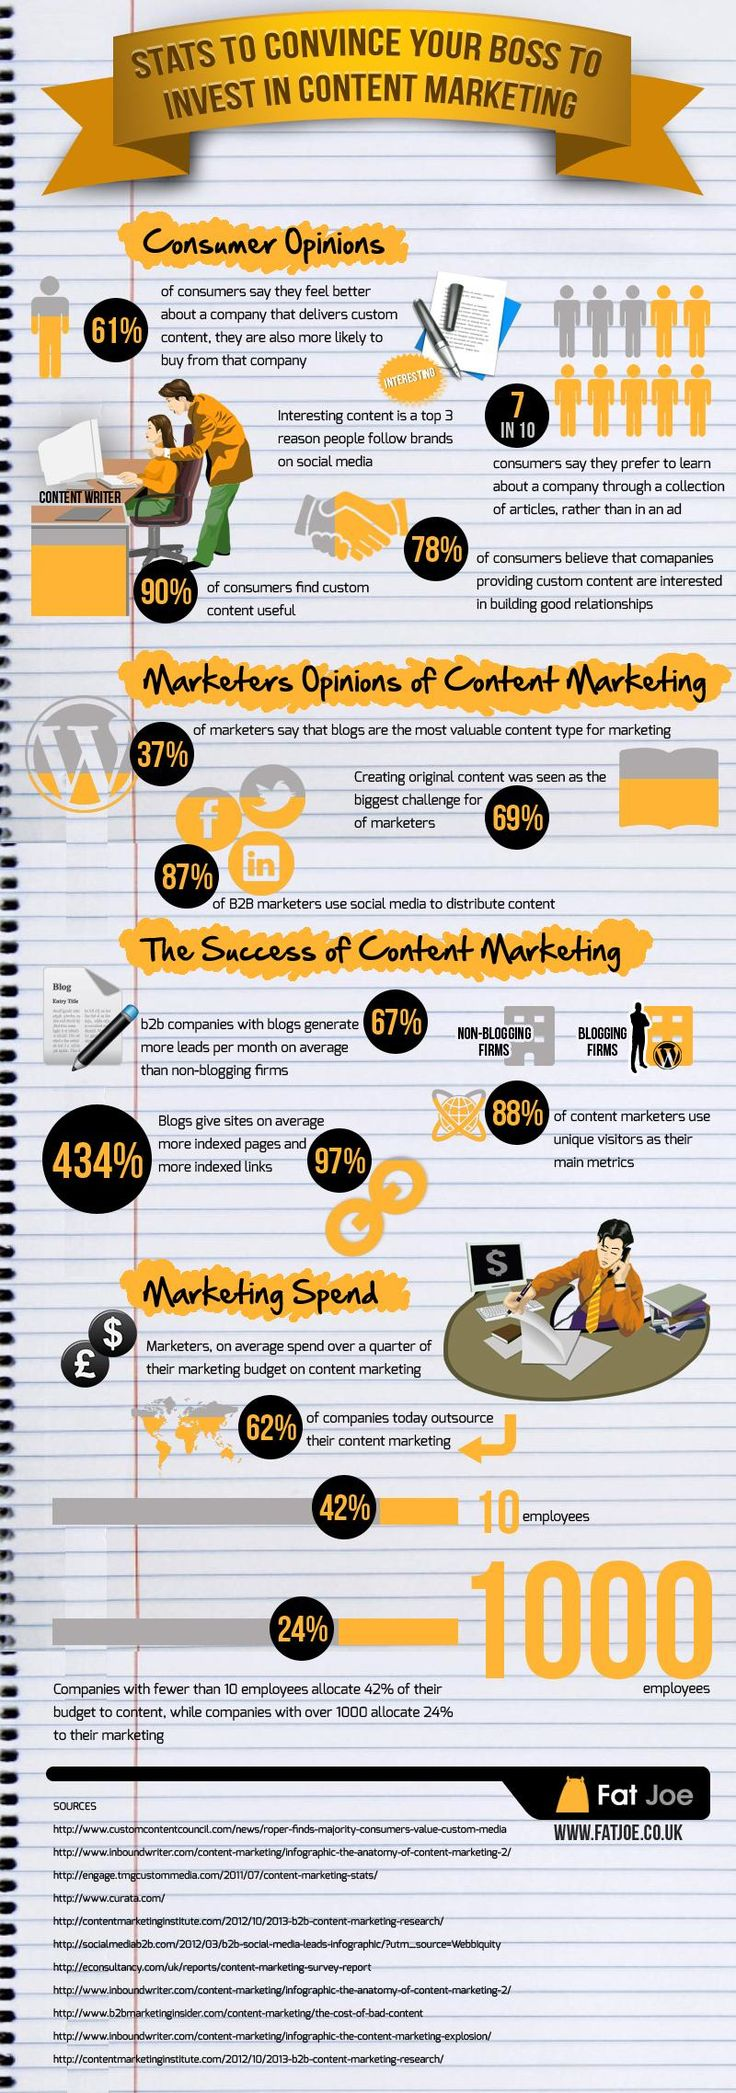 Statistics To Convince Your Boss To Invest In Content Marketing